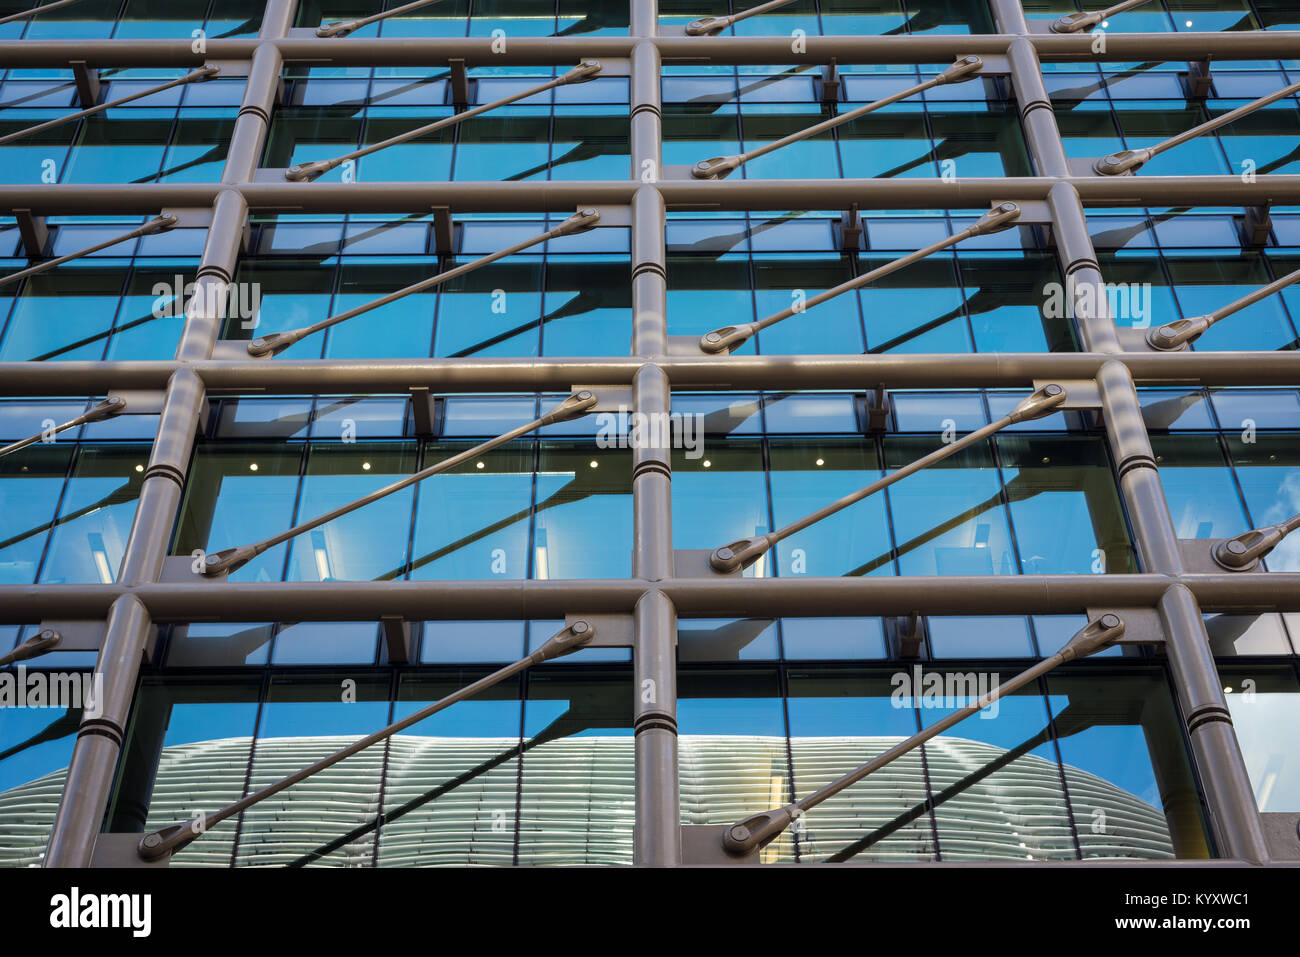 Exterior of office buildings around the City of London, United Kingdom - Stock Image